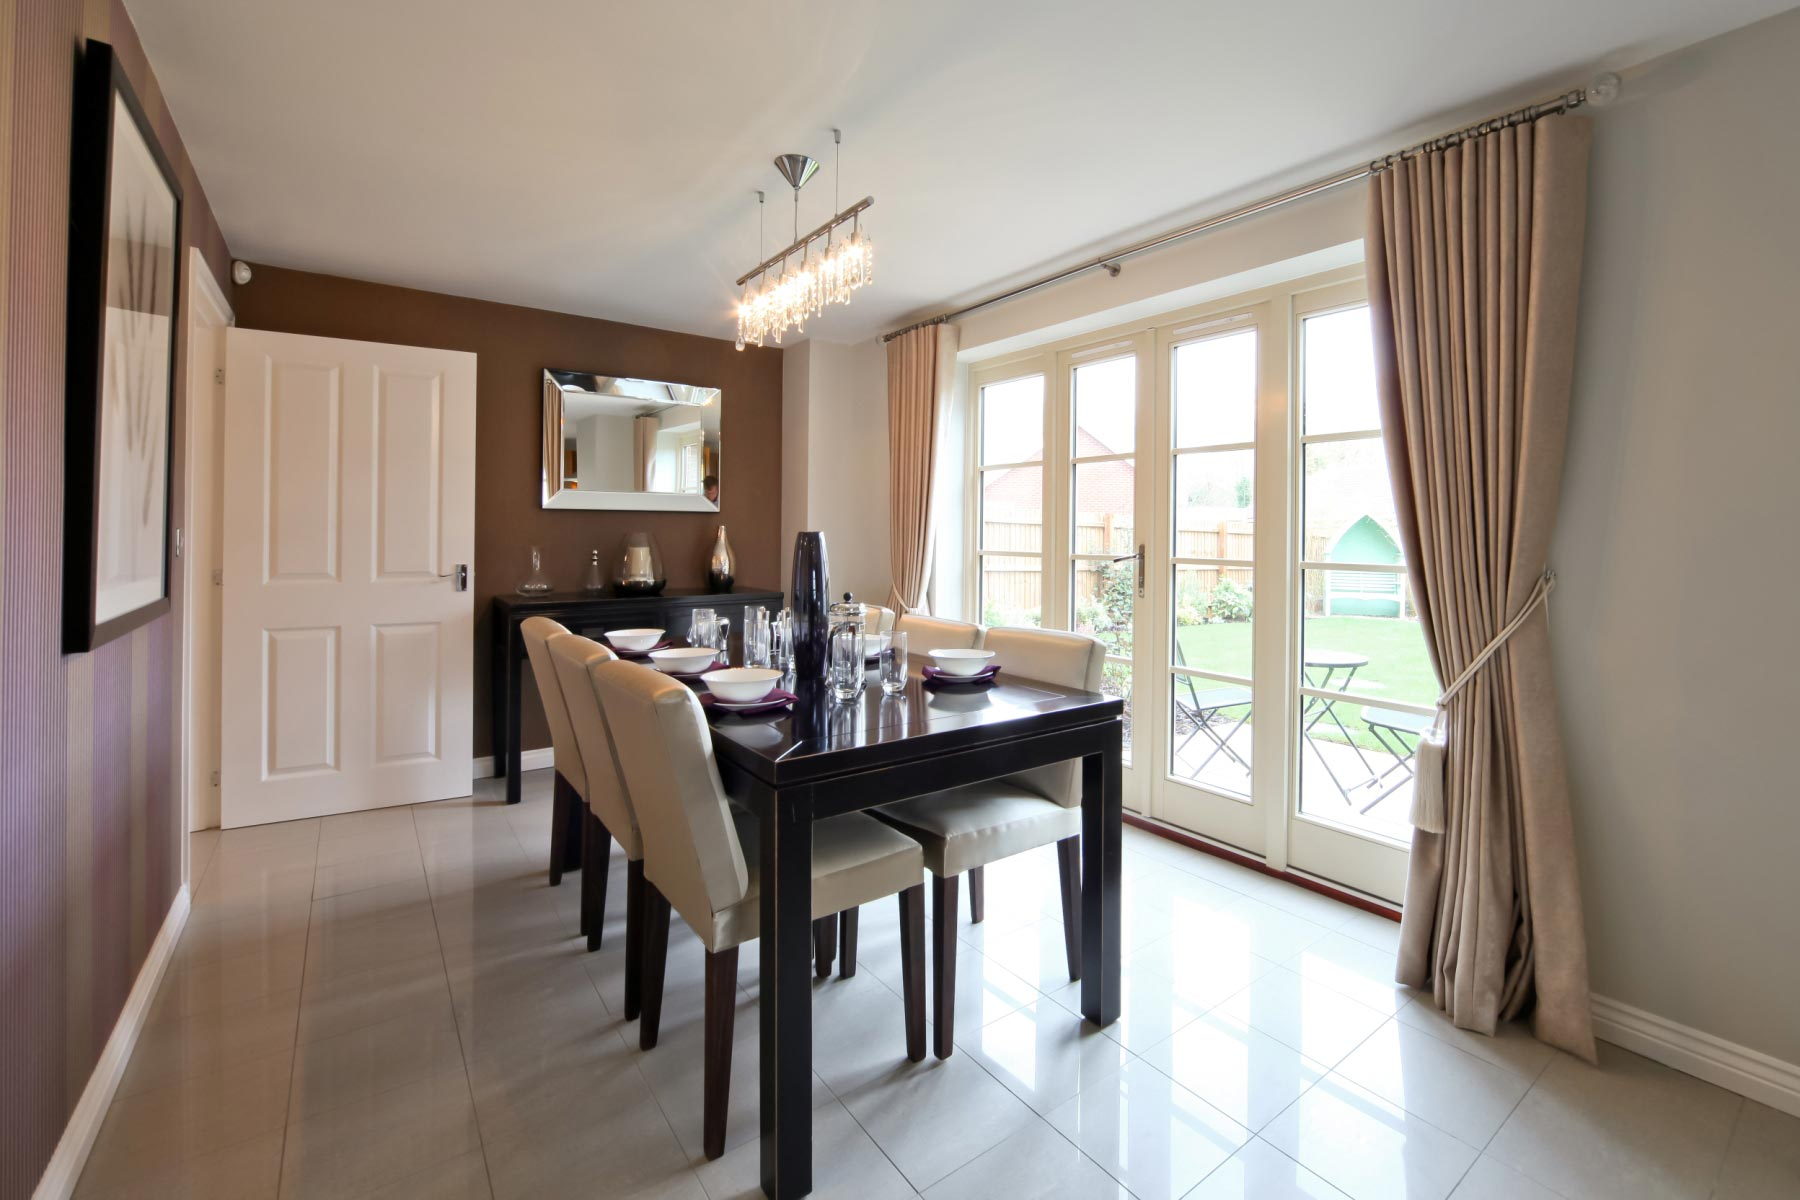 Taylor Wimpey - Typical dining room